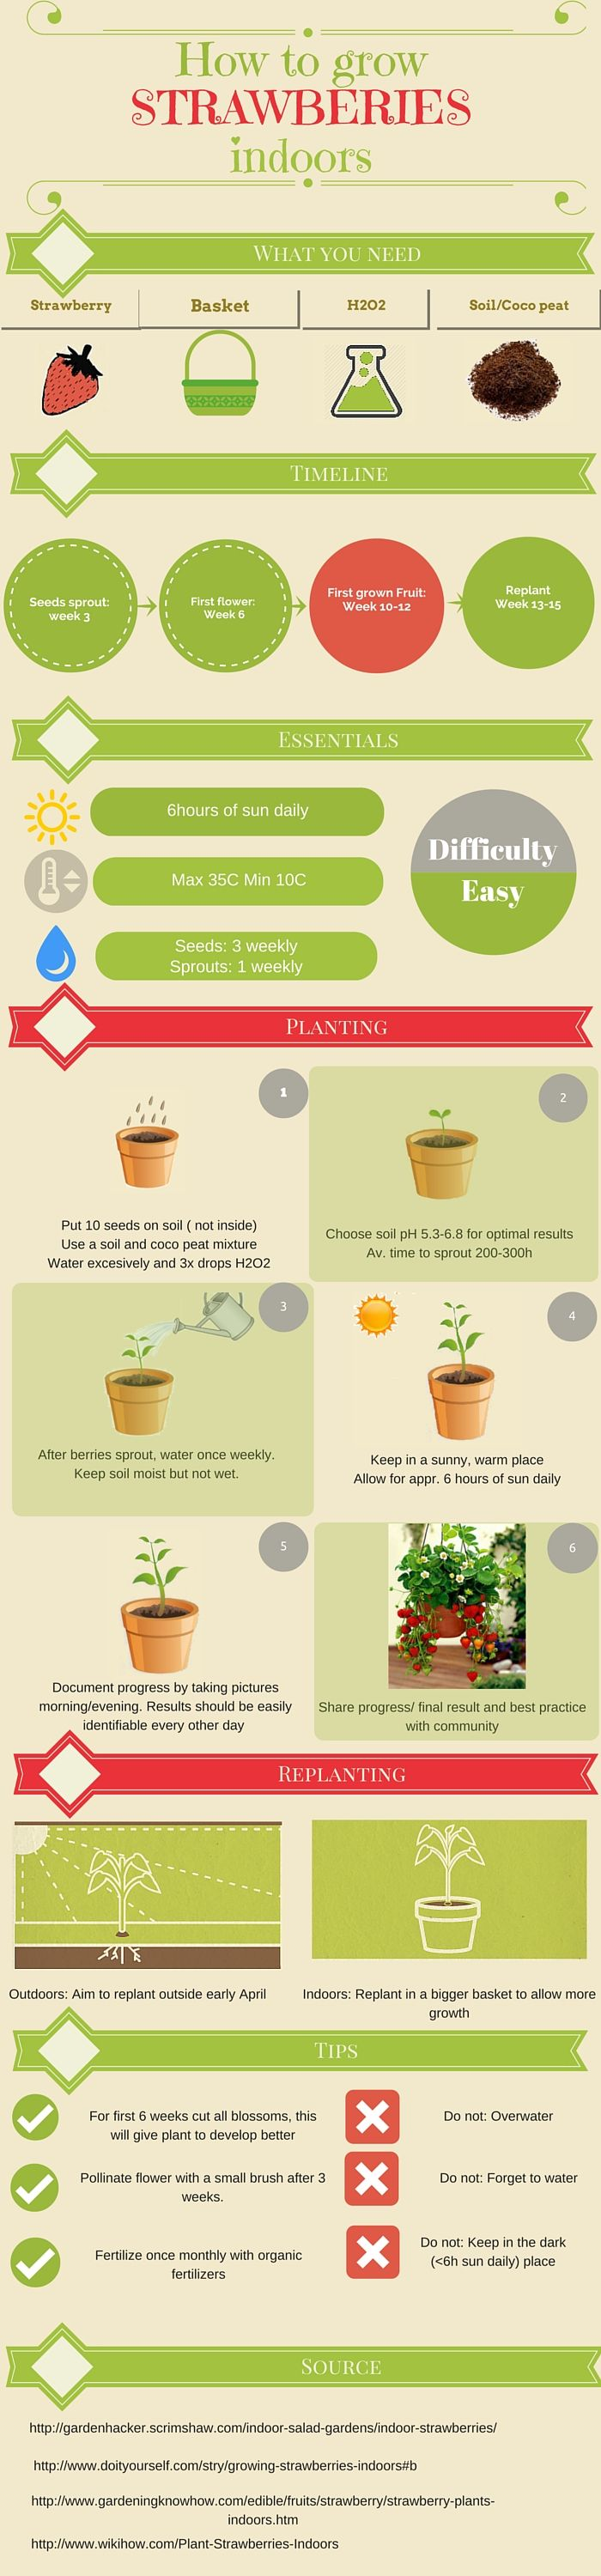 If you ever wondered how to grow your own tasty #strawberries, which on top of it all will fill your home with colour, check our #guide and find the six easy steps to grow your own!  Find out more here: www.easygrow.me